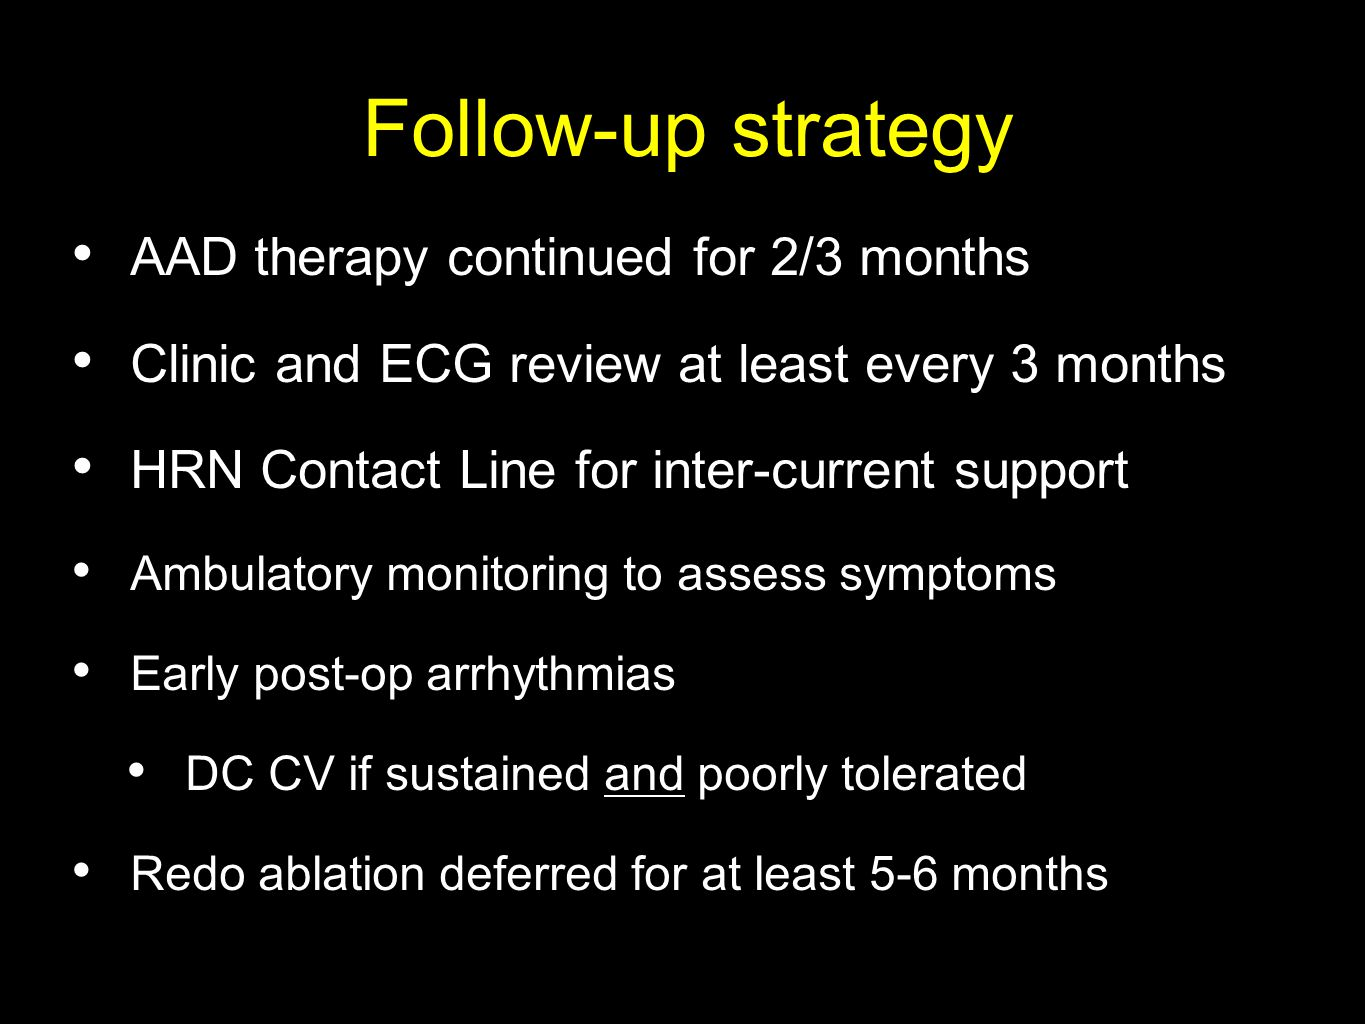 Follow-up strategy AAD therapy continued for 2/3 months Clinic and ECG review at least every 3 months HRN Contact Line for inter-current support Ambulatory monitoring to assess symptoms Early post-op arrhythmias DC CV if sustained and poorly tolerated Redo ablation deferred for at least 5-6 months